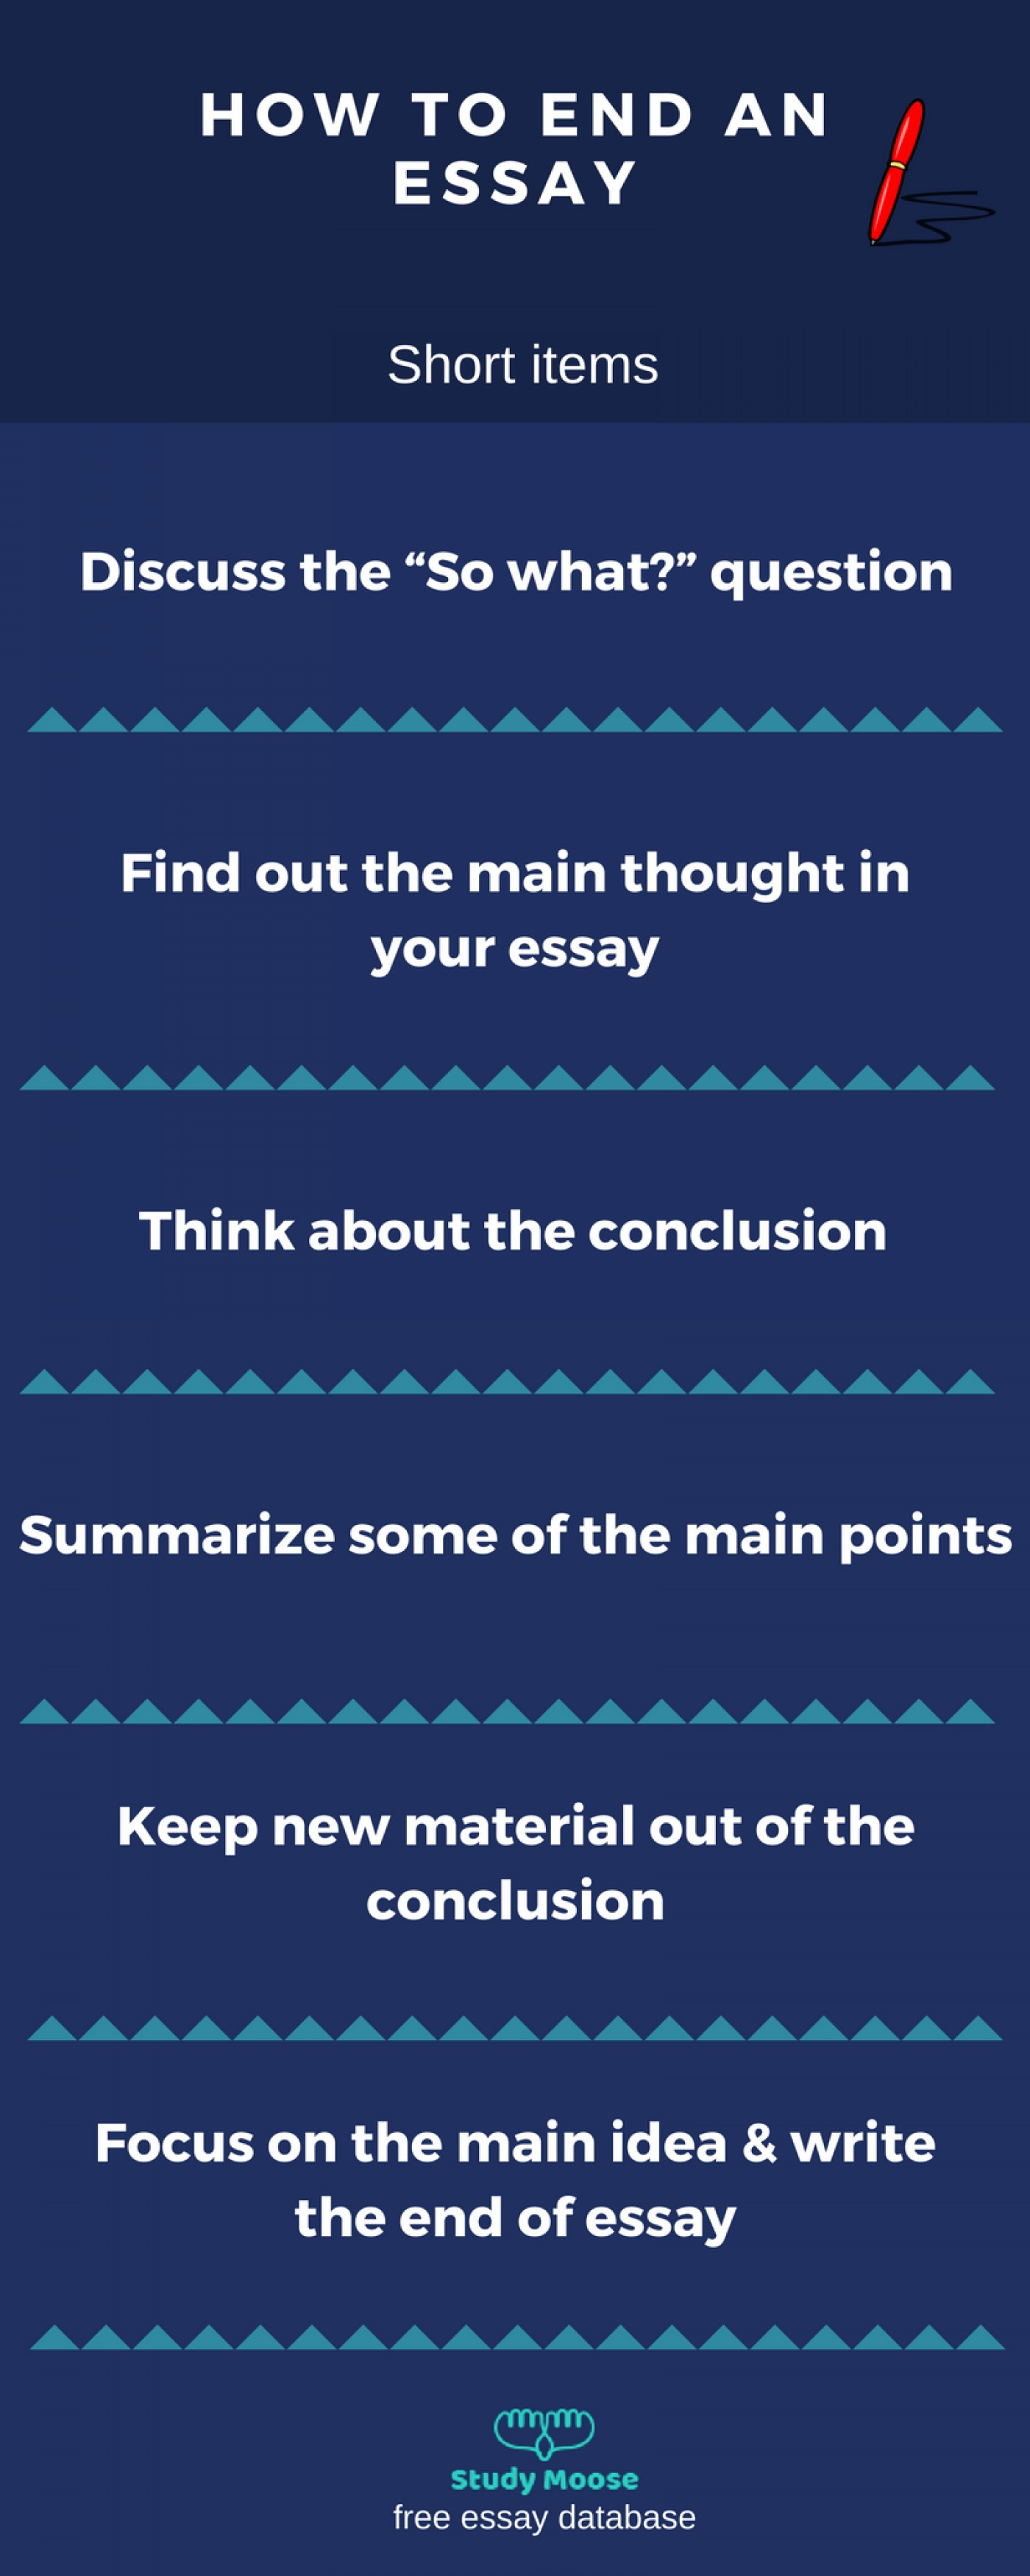 003 Essay Example Good Ways To End An Outstanding Best Way Argumentative How Opinion 1400